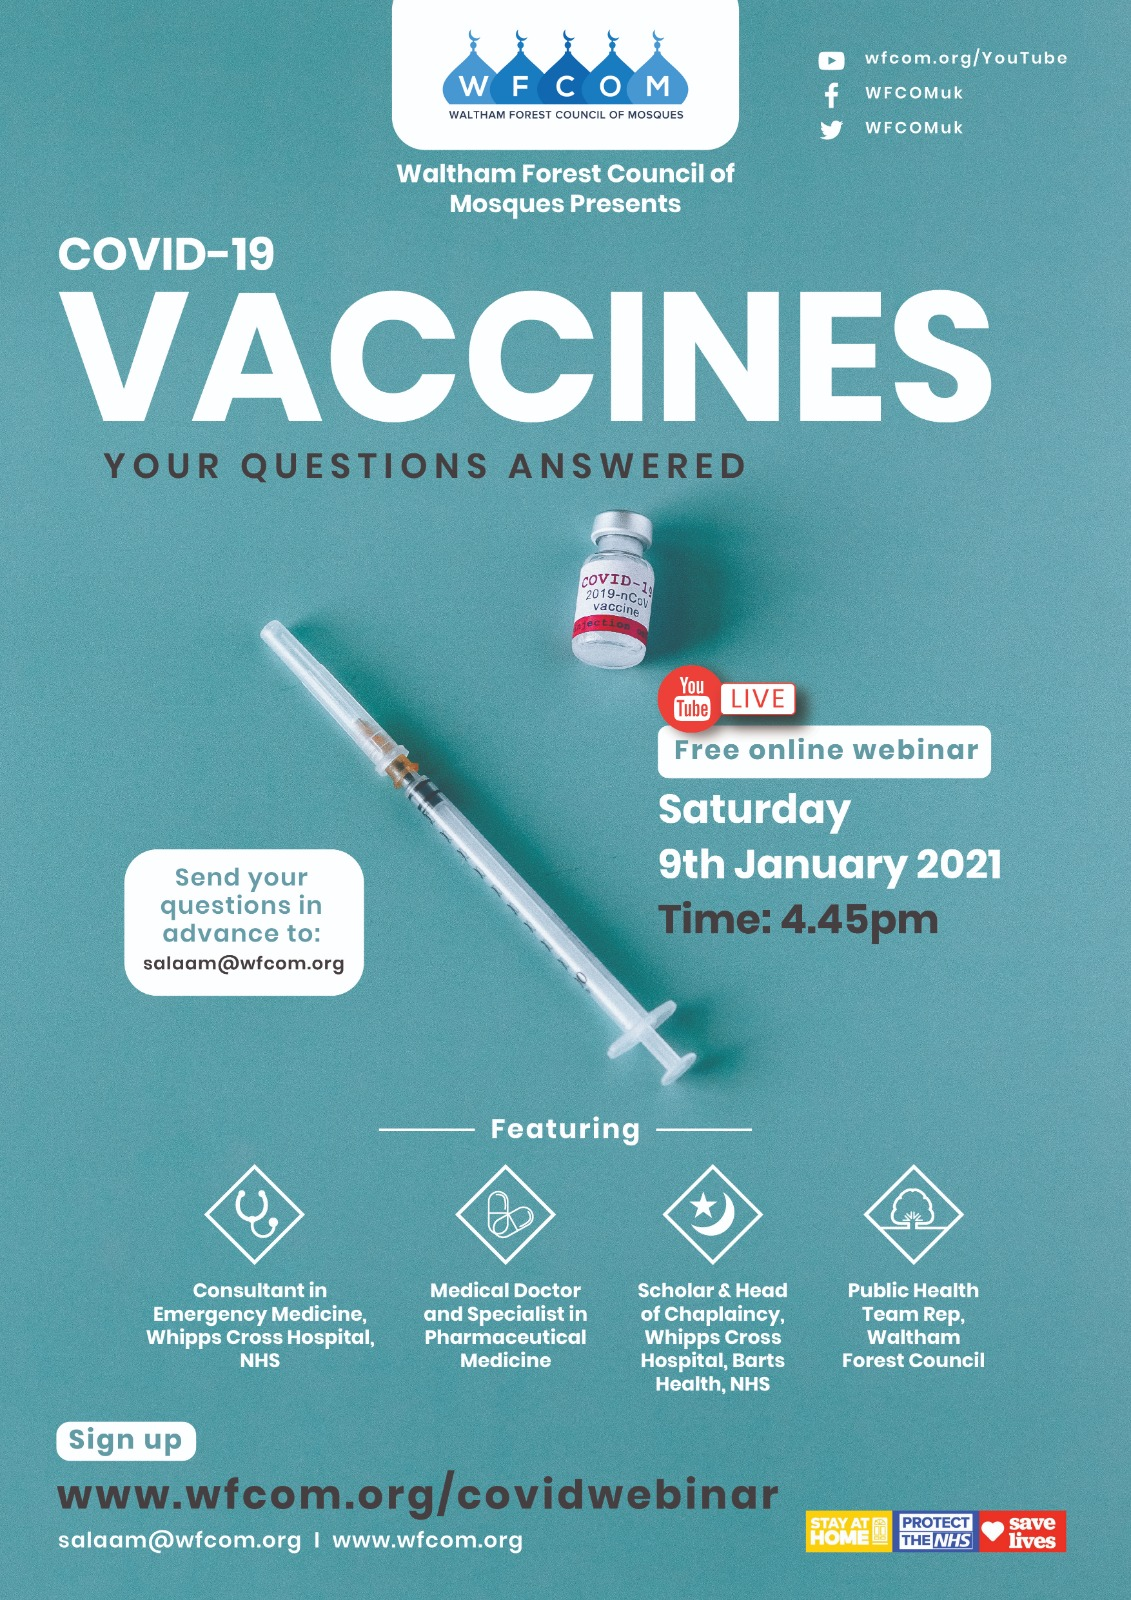 Covid-19 Vaccines: Your Questions Answered